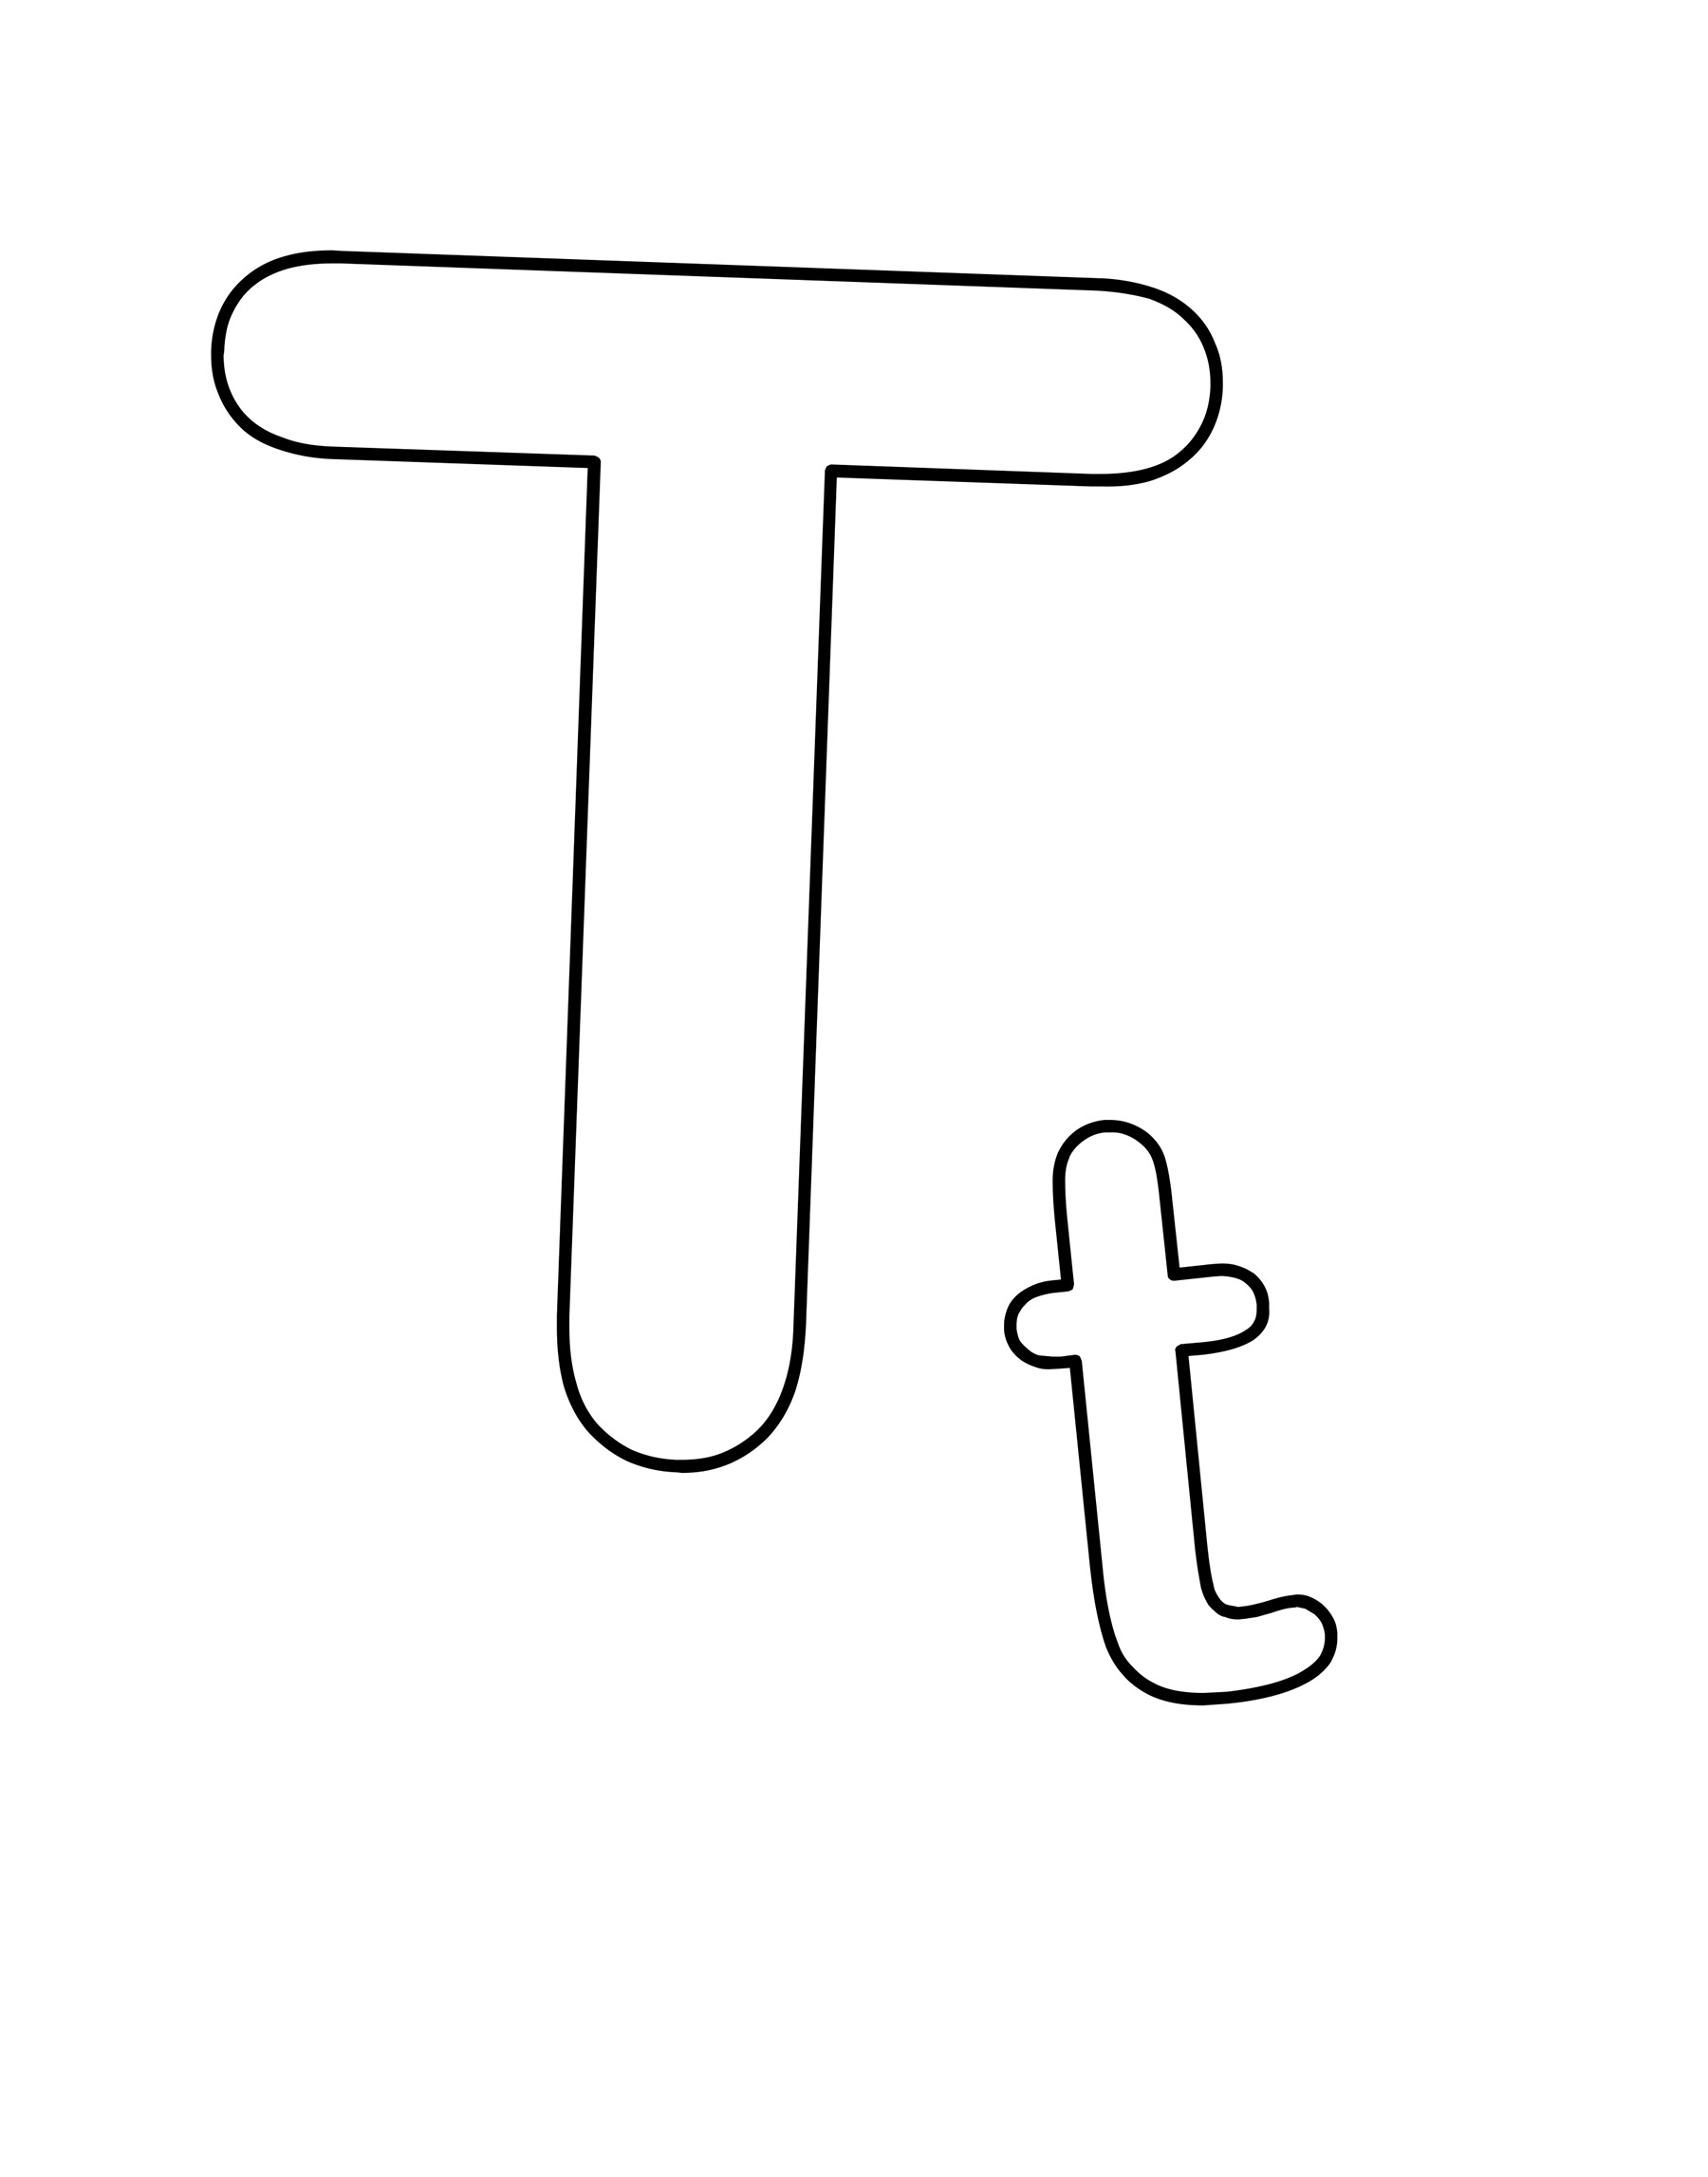 Coloring sheet of the letter t - Free Letter T Coloring Pages To Print For Kids Download Print And Color